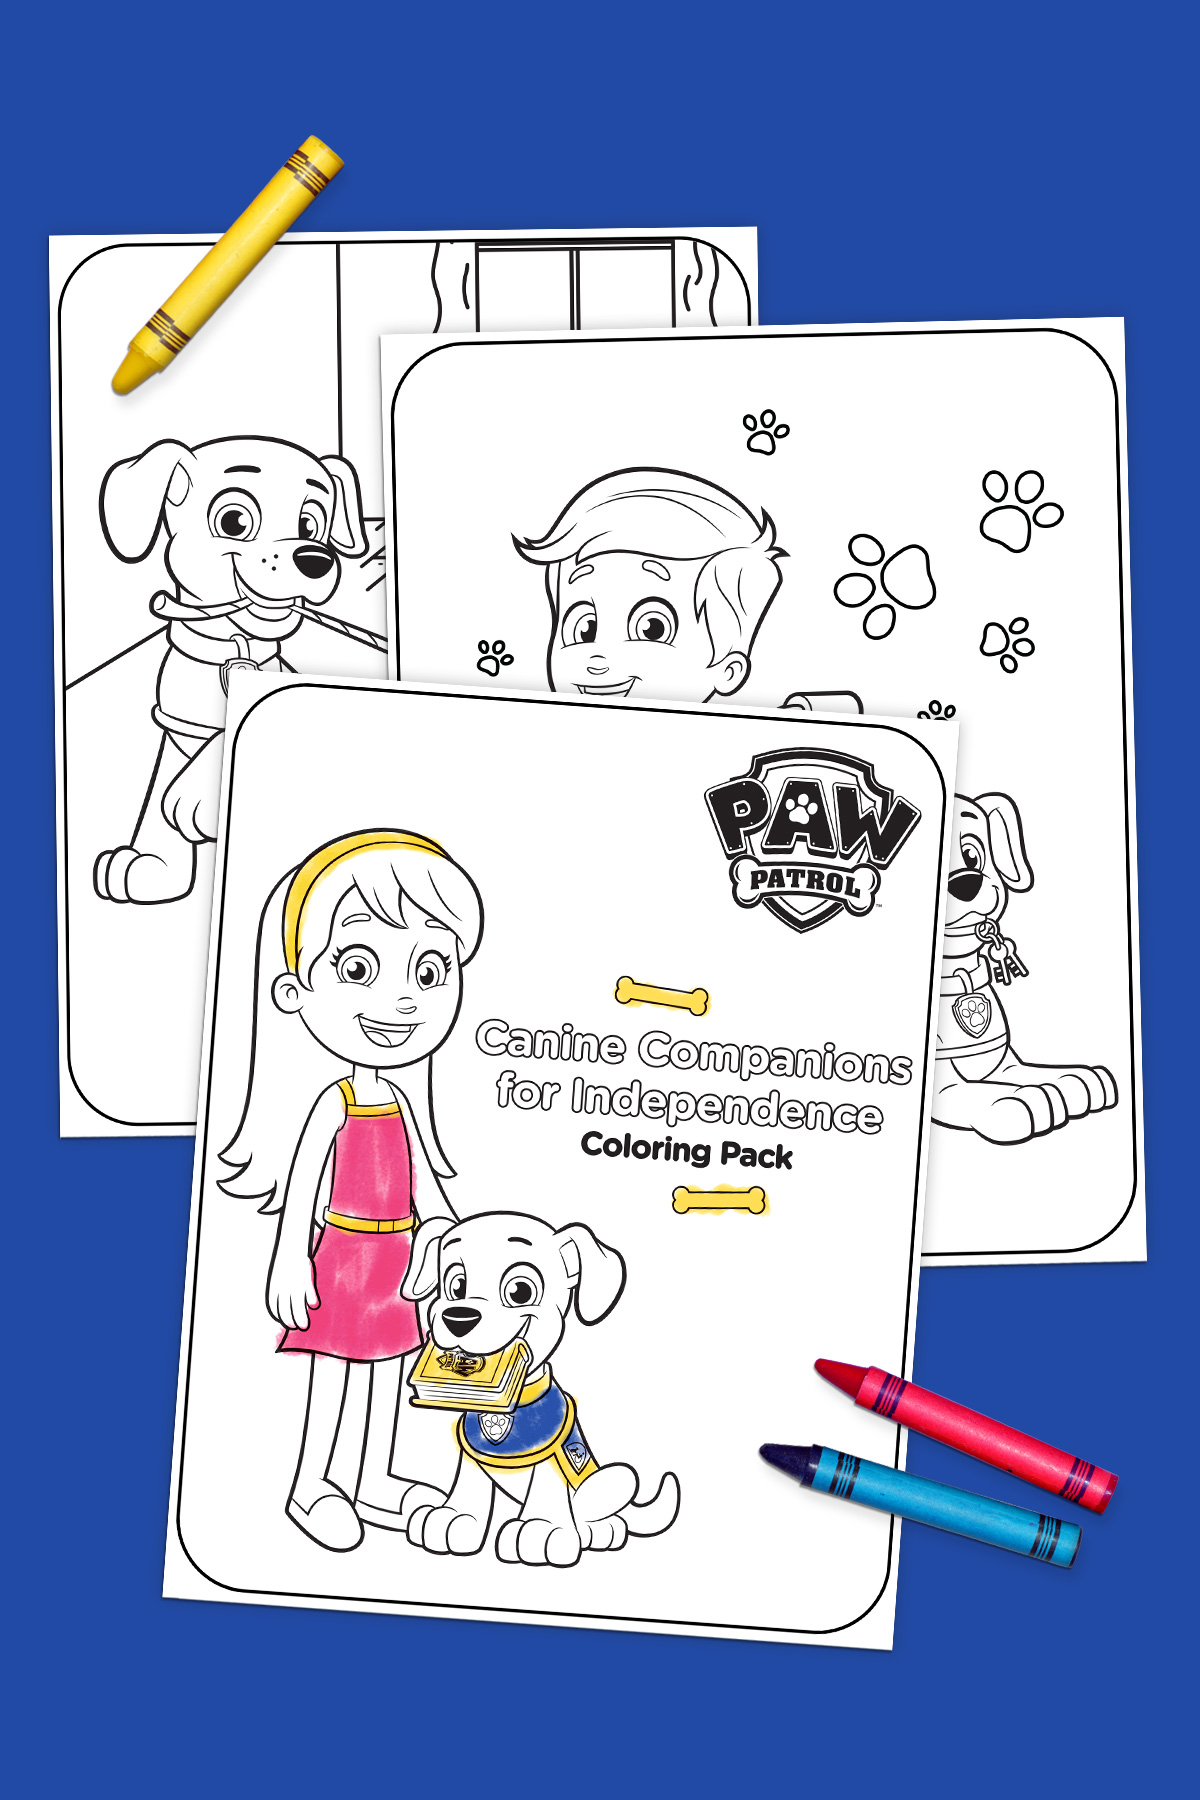 Canine companions for independence coloring pack nickelodeon parents